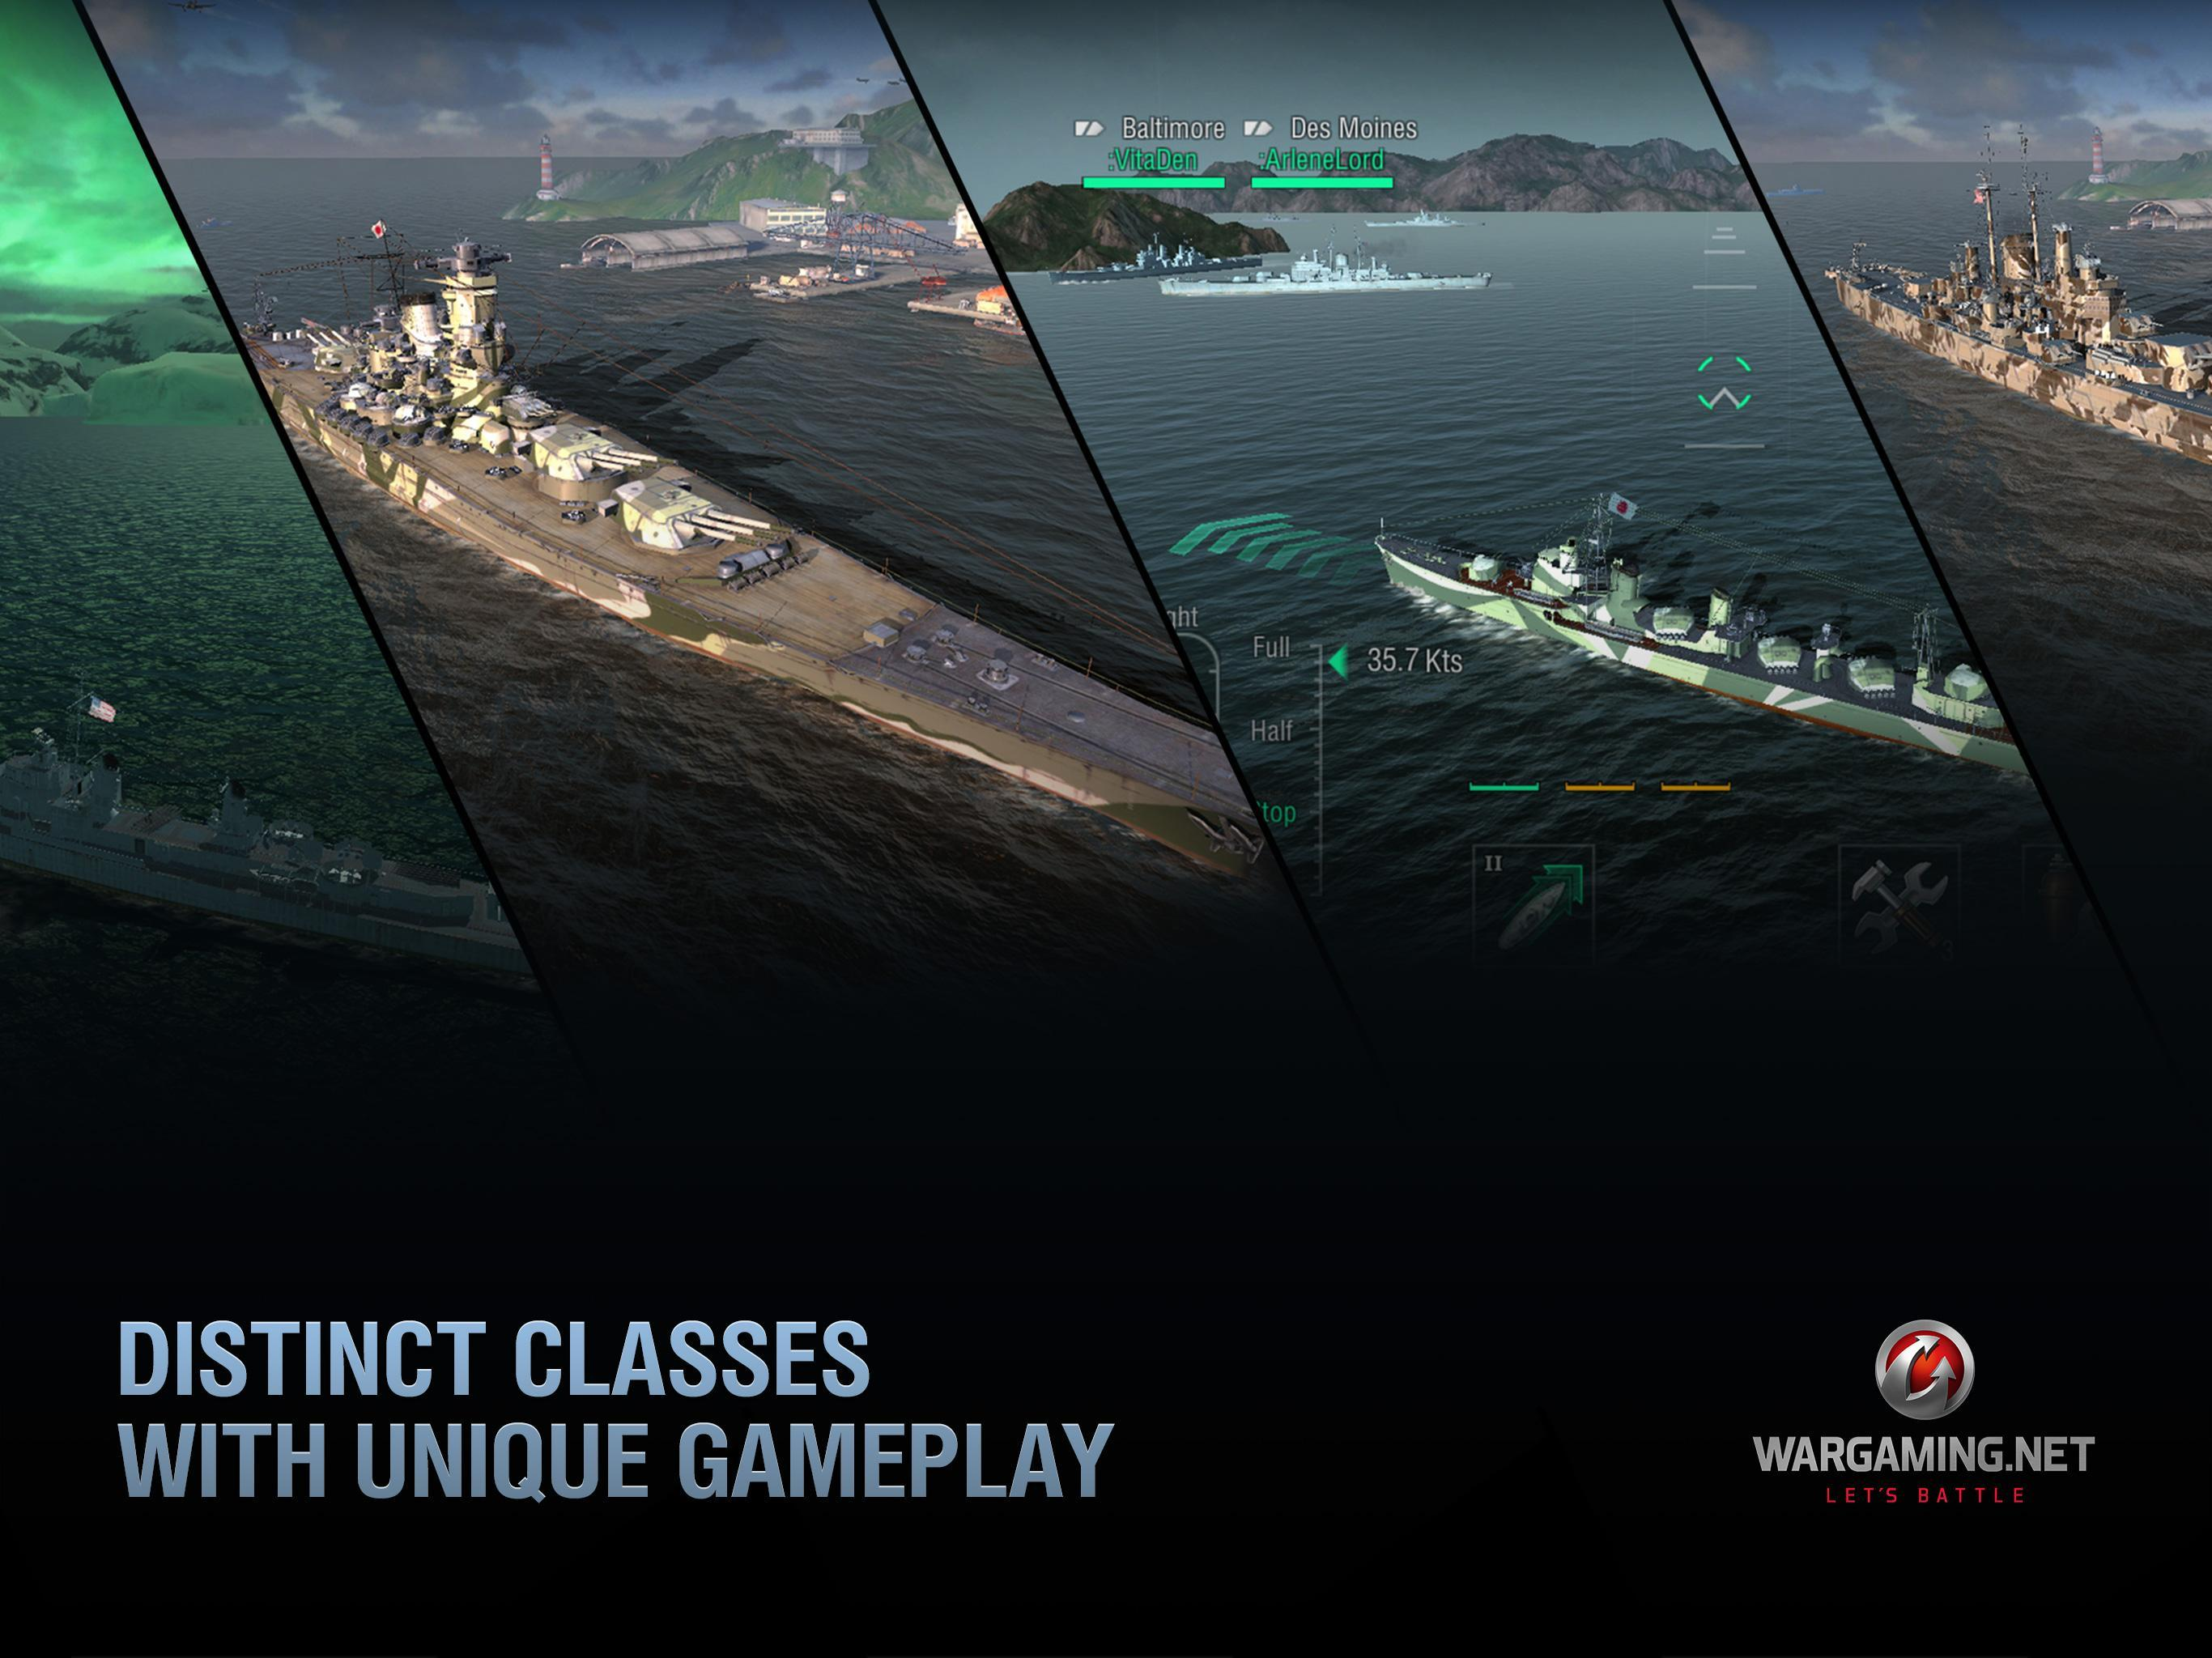 World of Warships Blitz: Gunship Action War Game 3.3.0 Screenshot 9